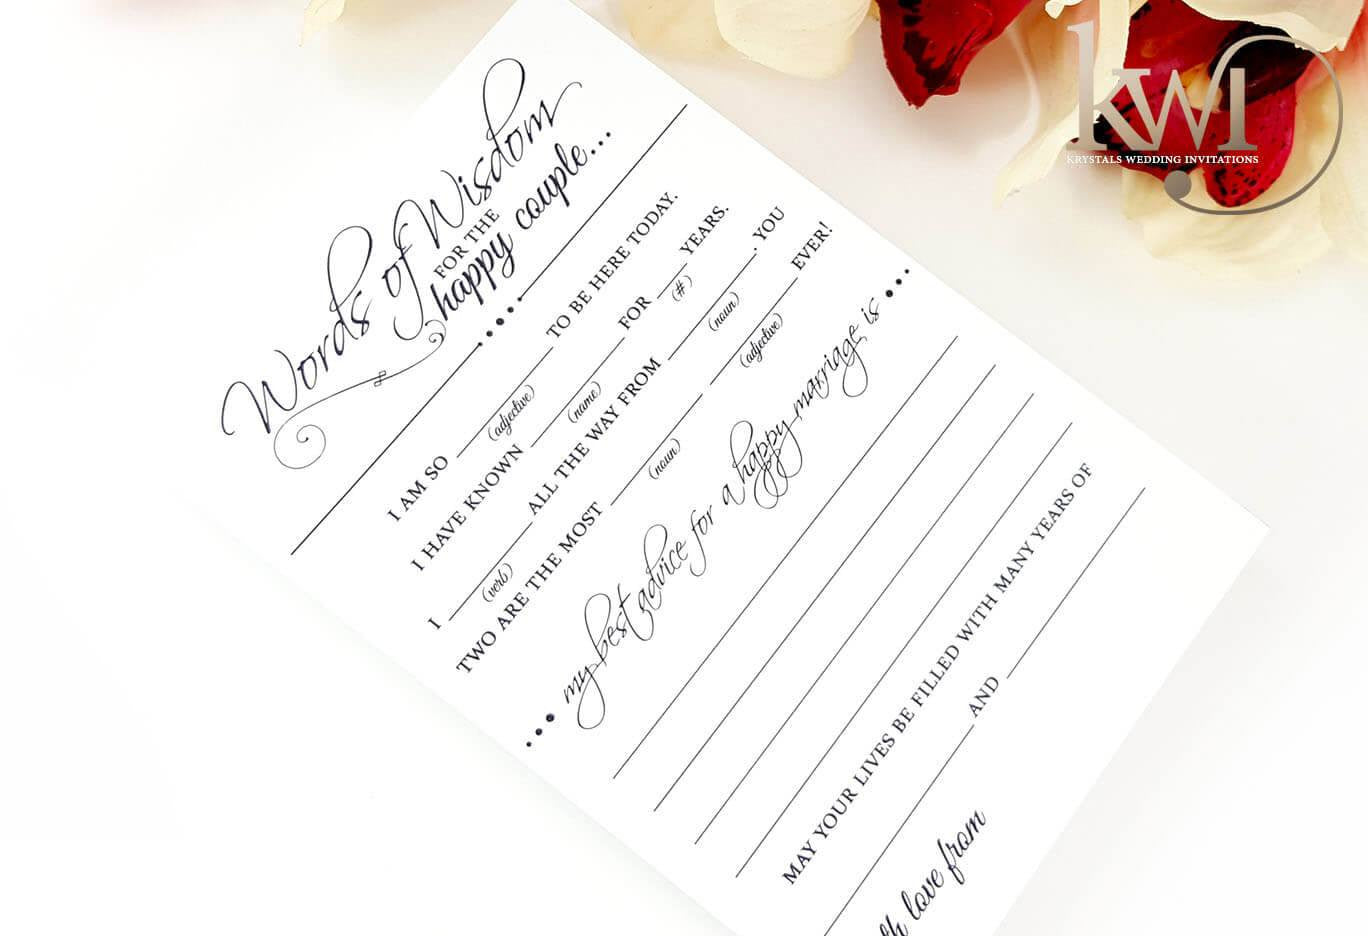 Mad Lib Wedding Advice Cards - Krystals Wedding Invitations